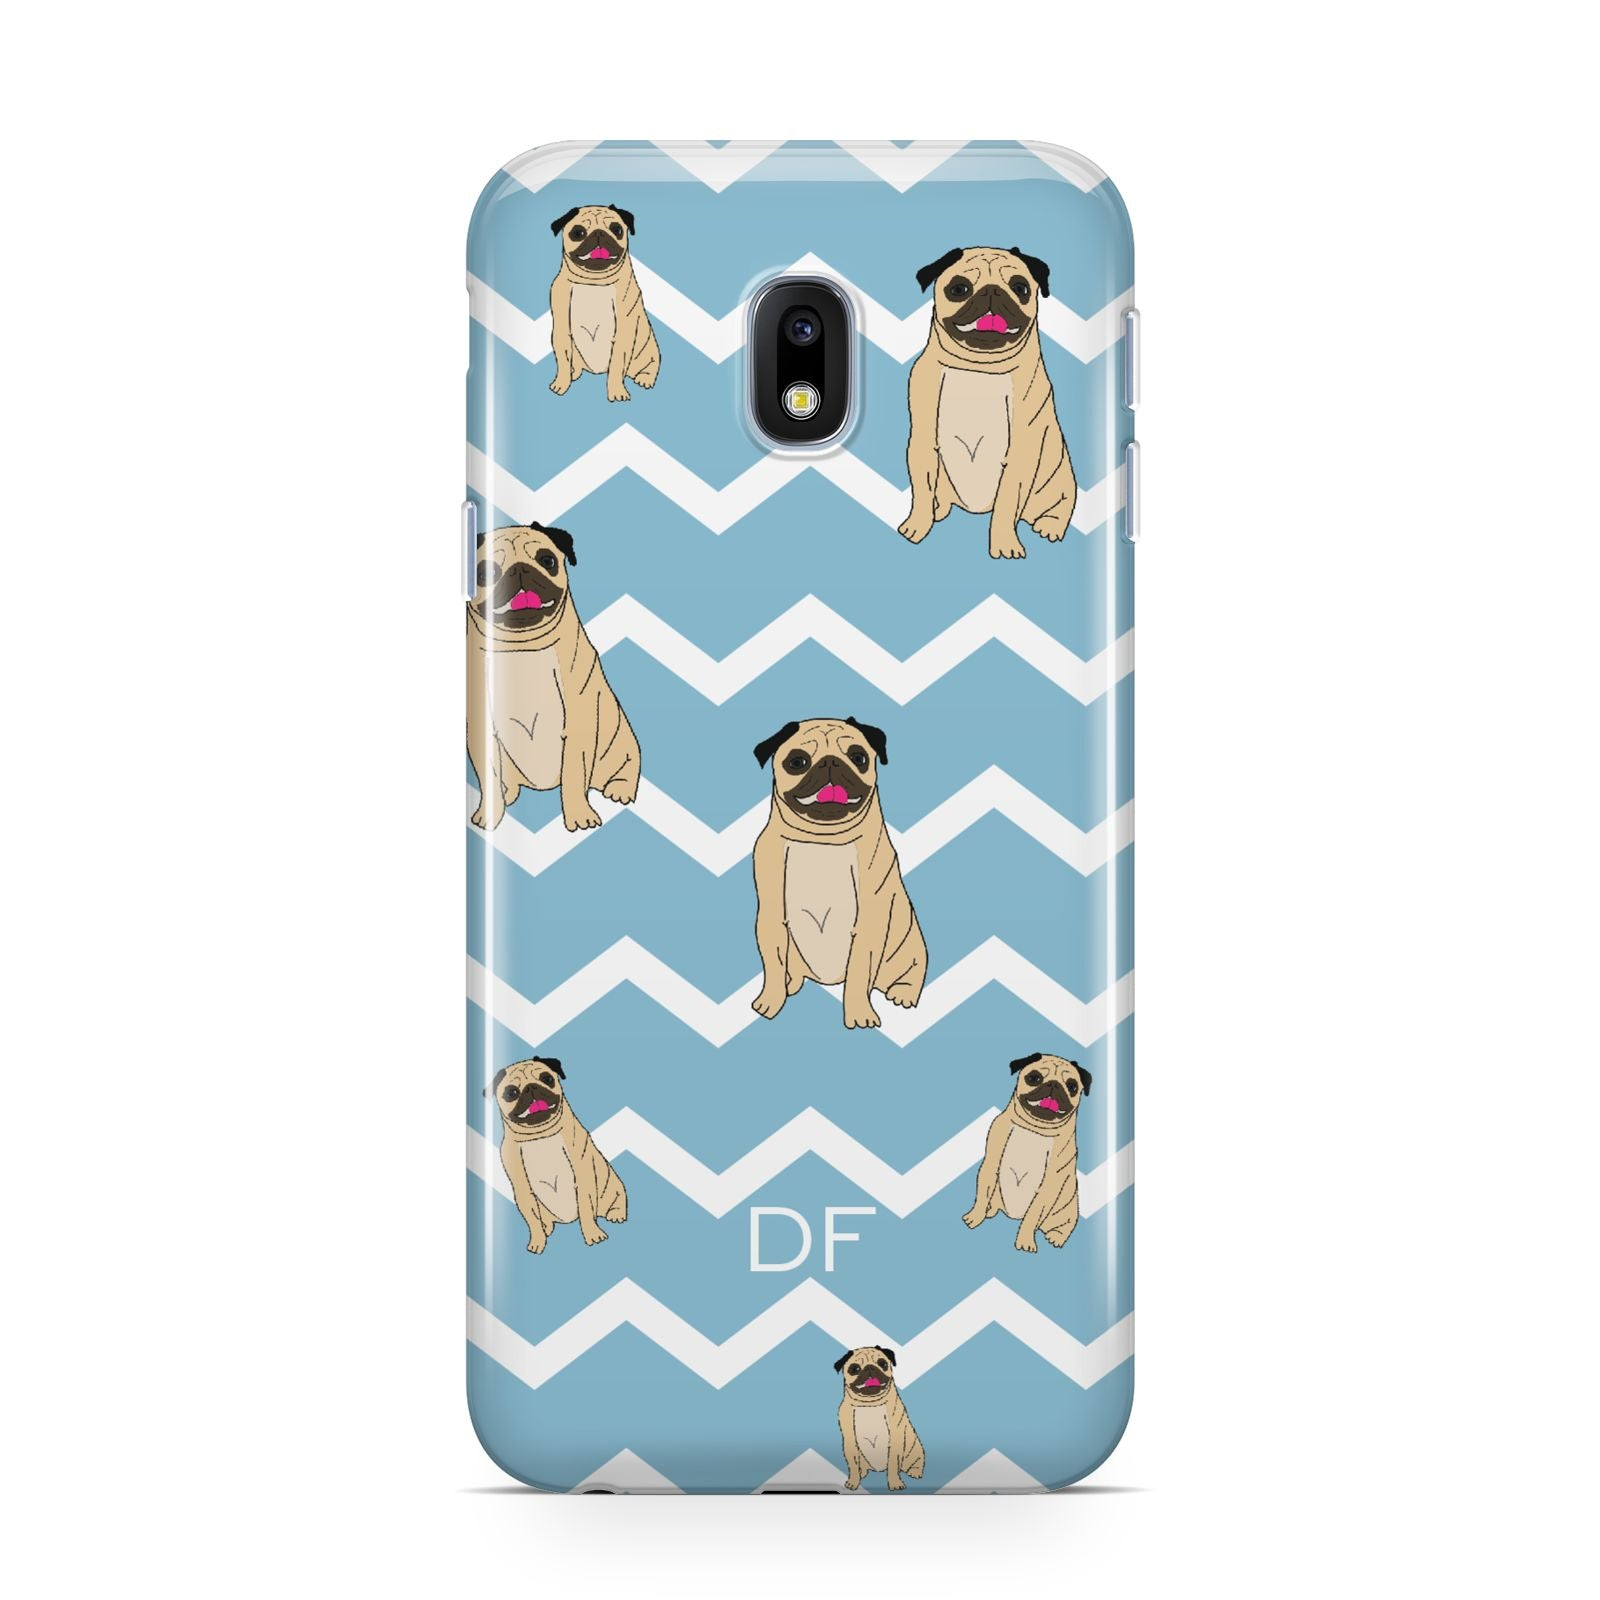 Personalised Pug Initials Samsung Galaxy J3 2017 Case